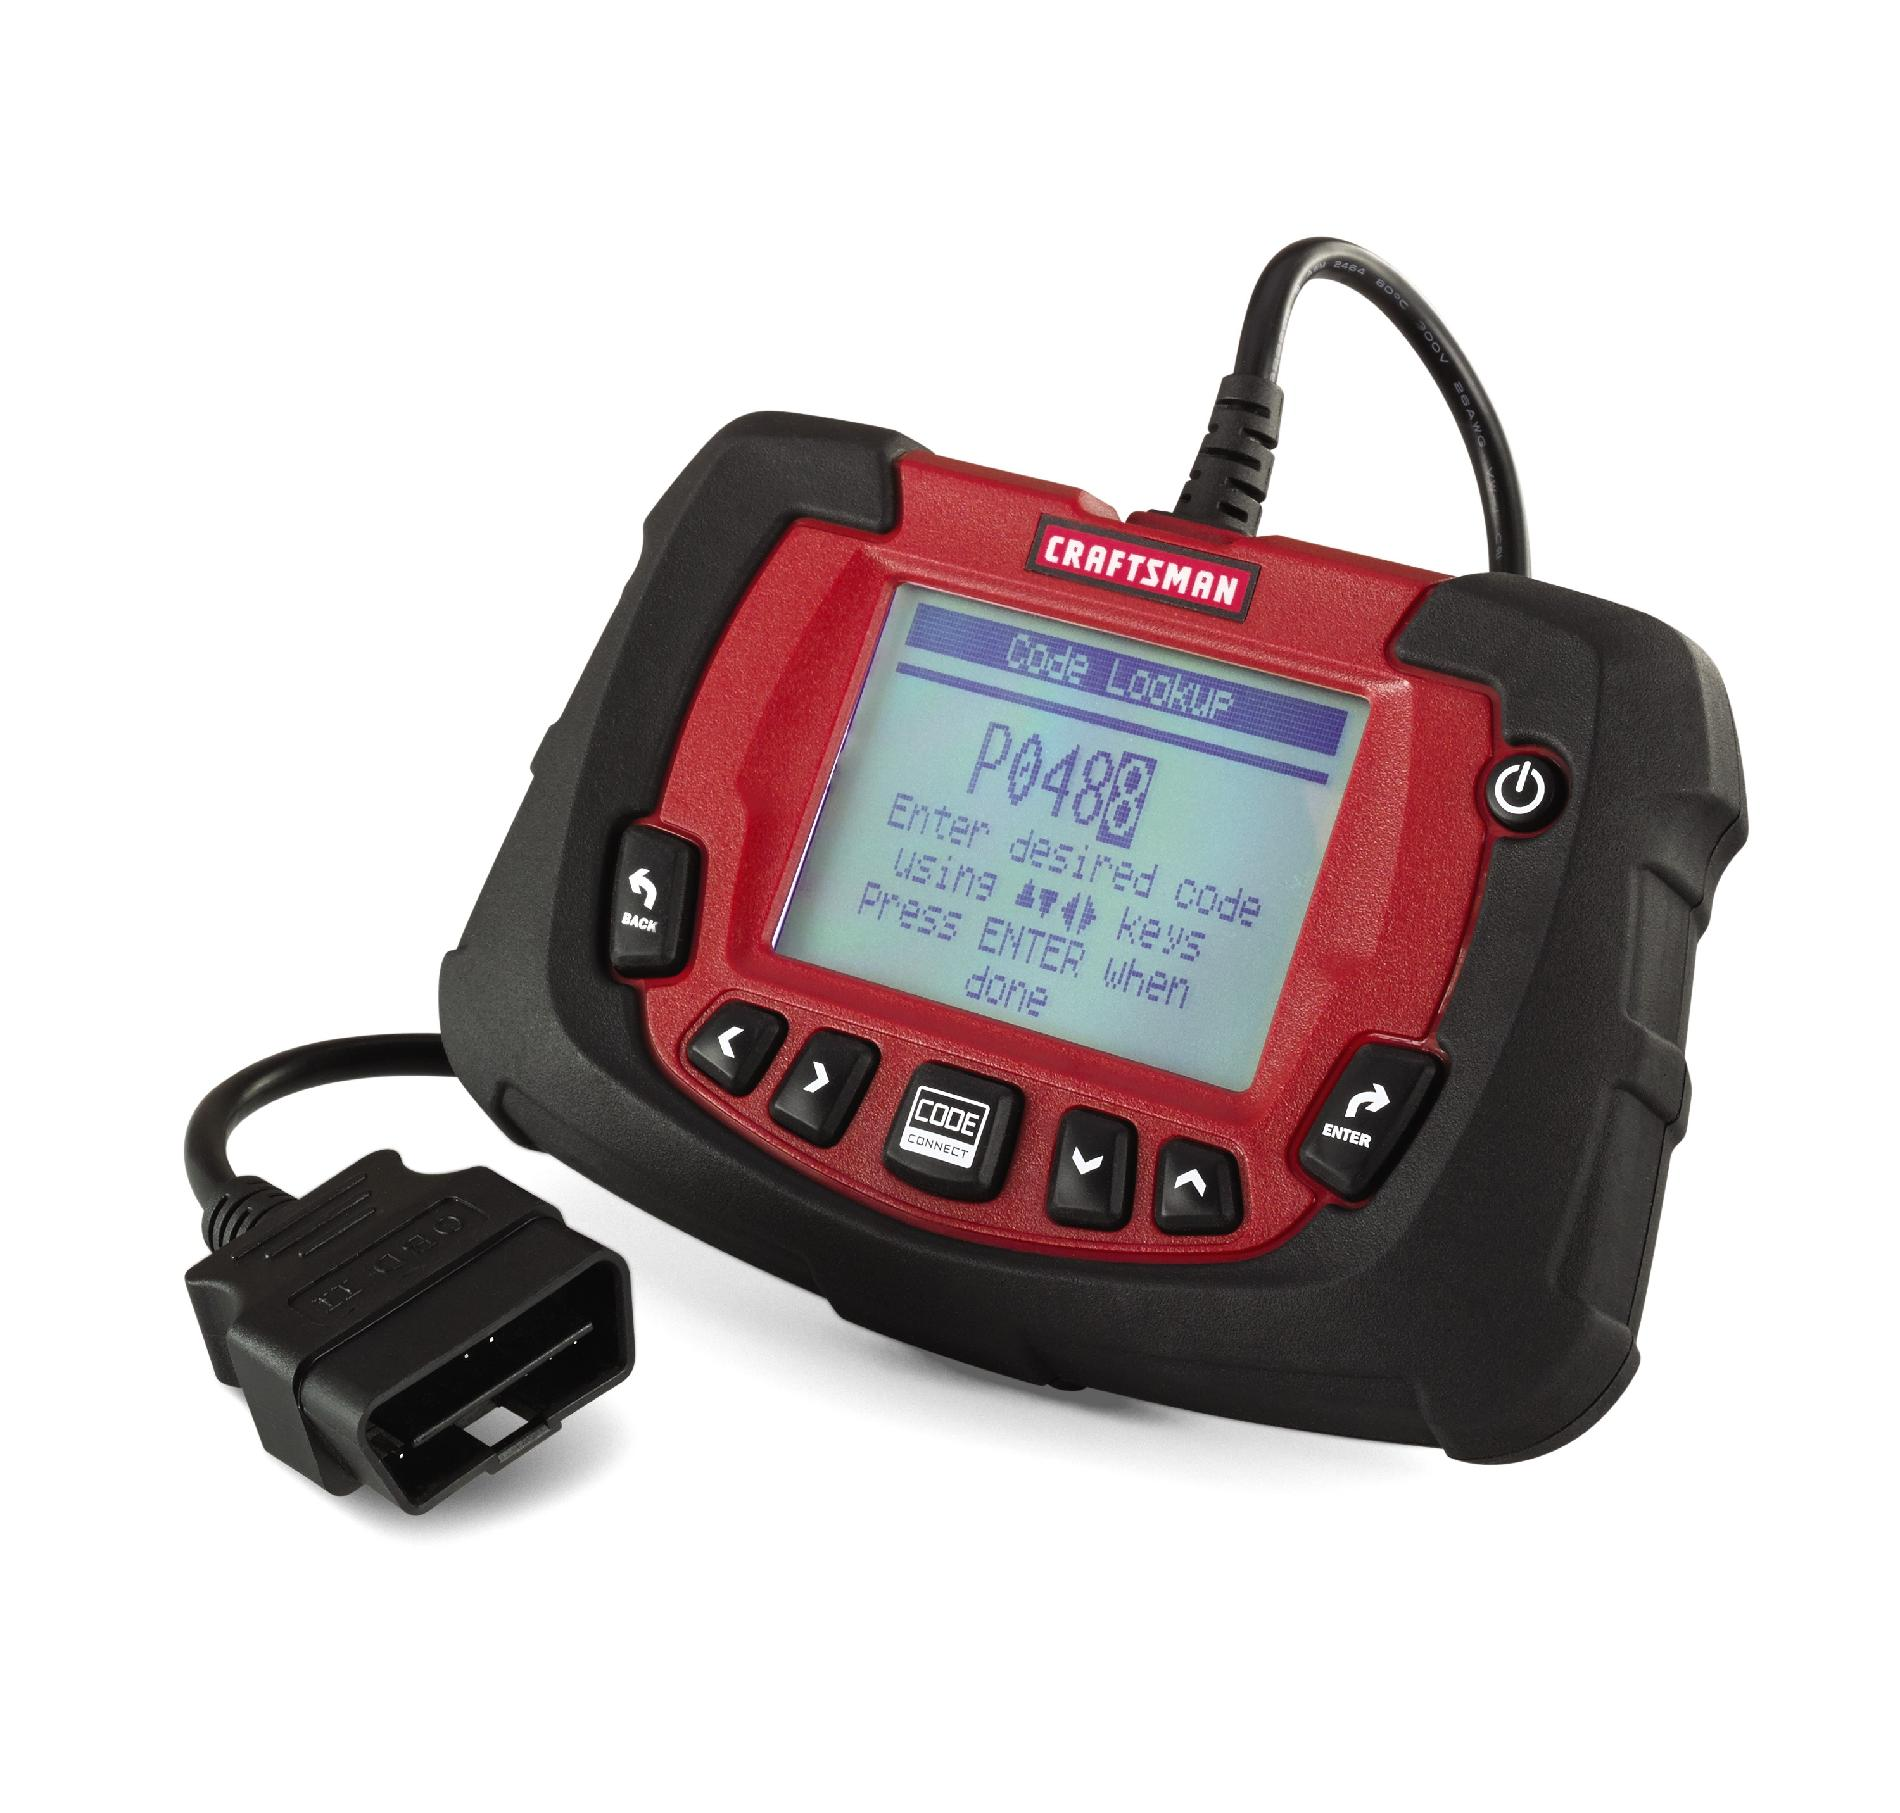 Tools Auto Craftsman Obd2 Scan Tool With Abs Airbag And Codeconnect